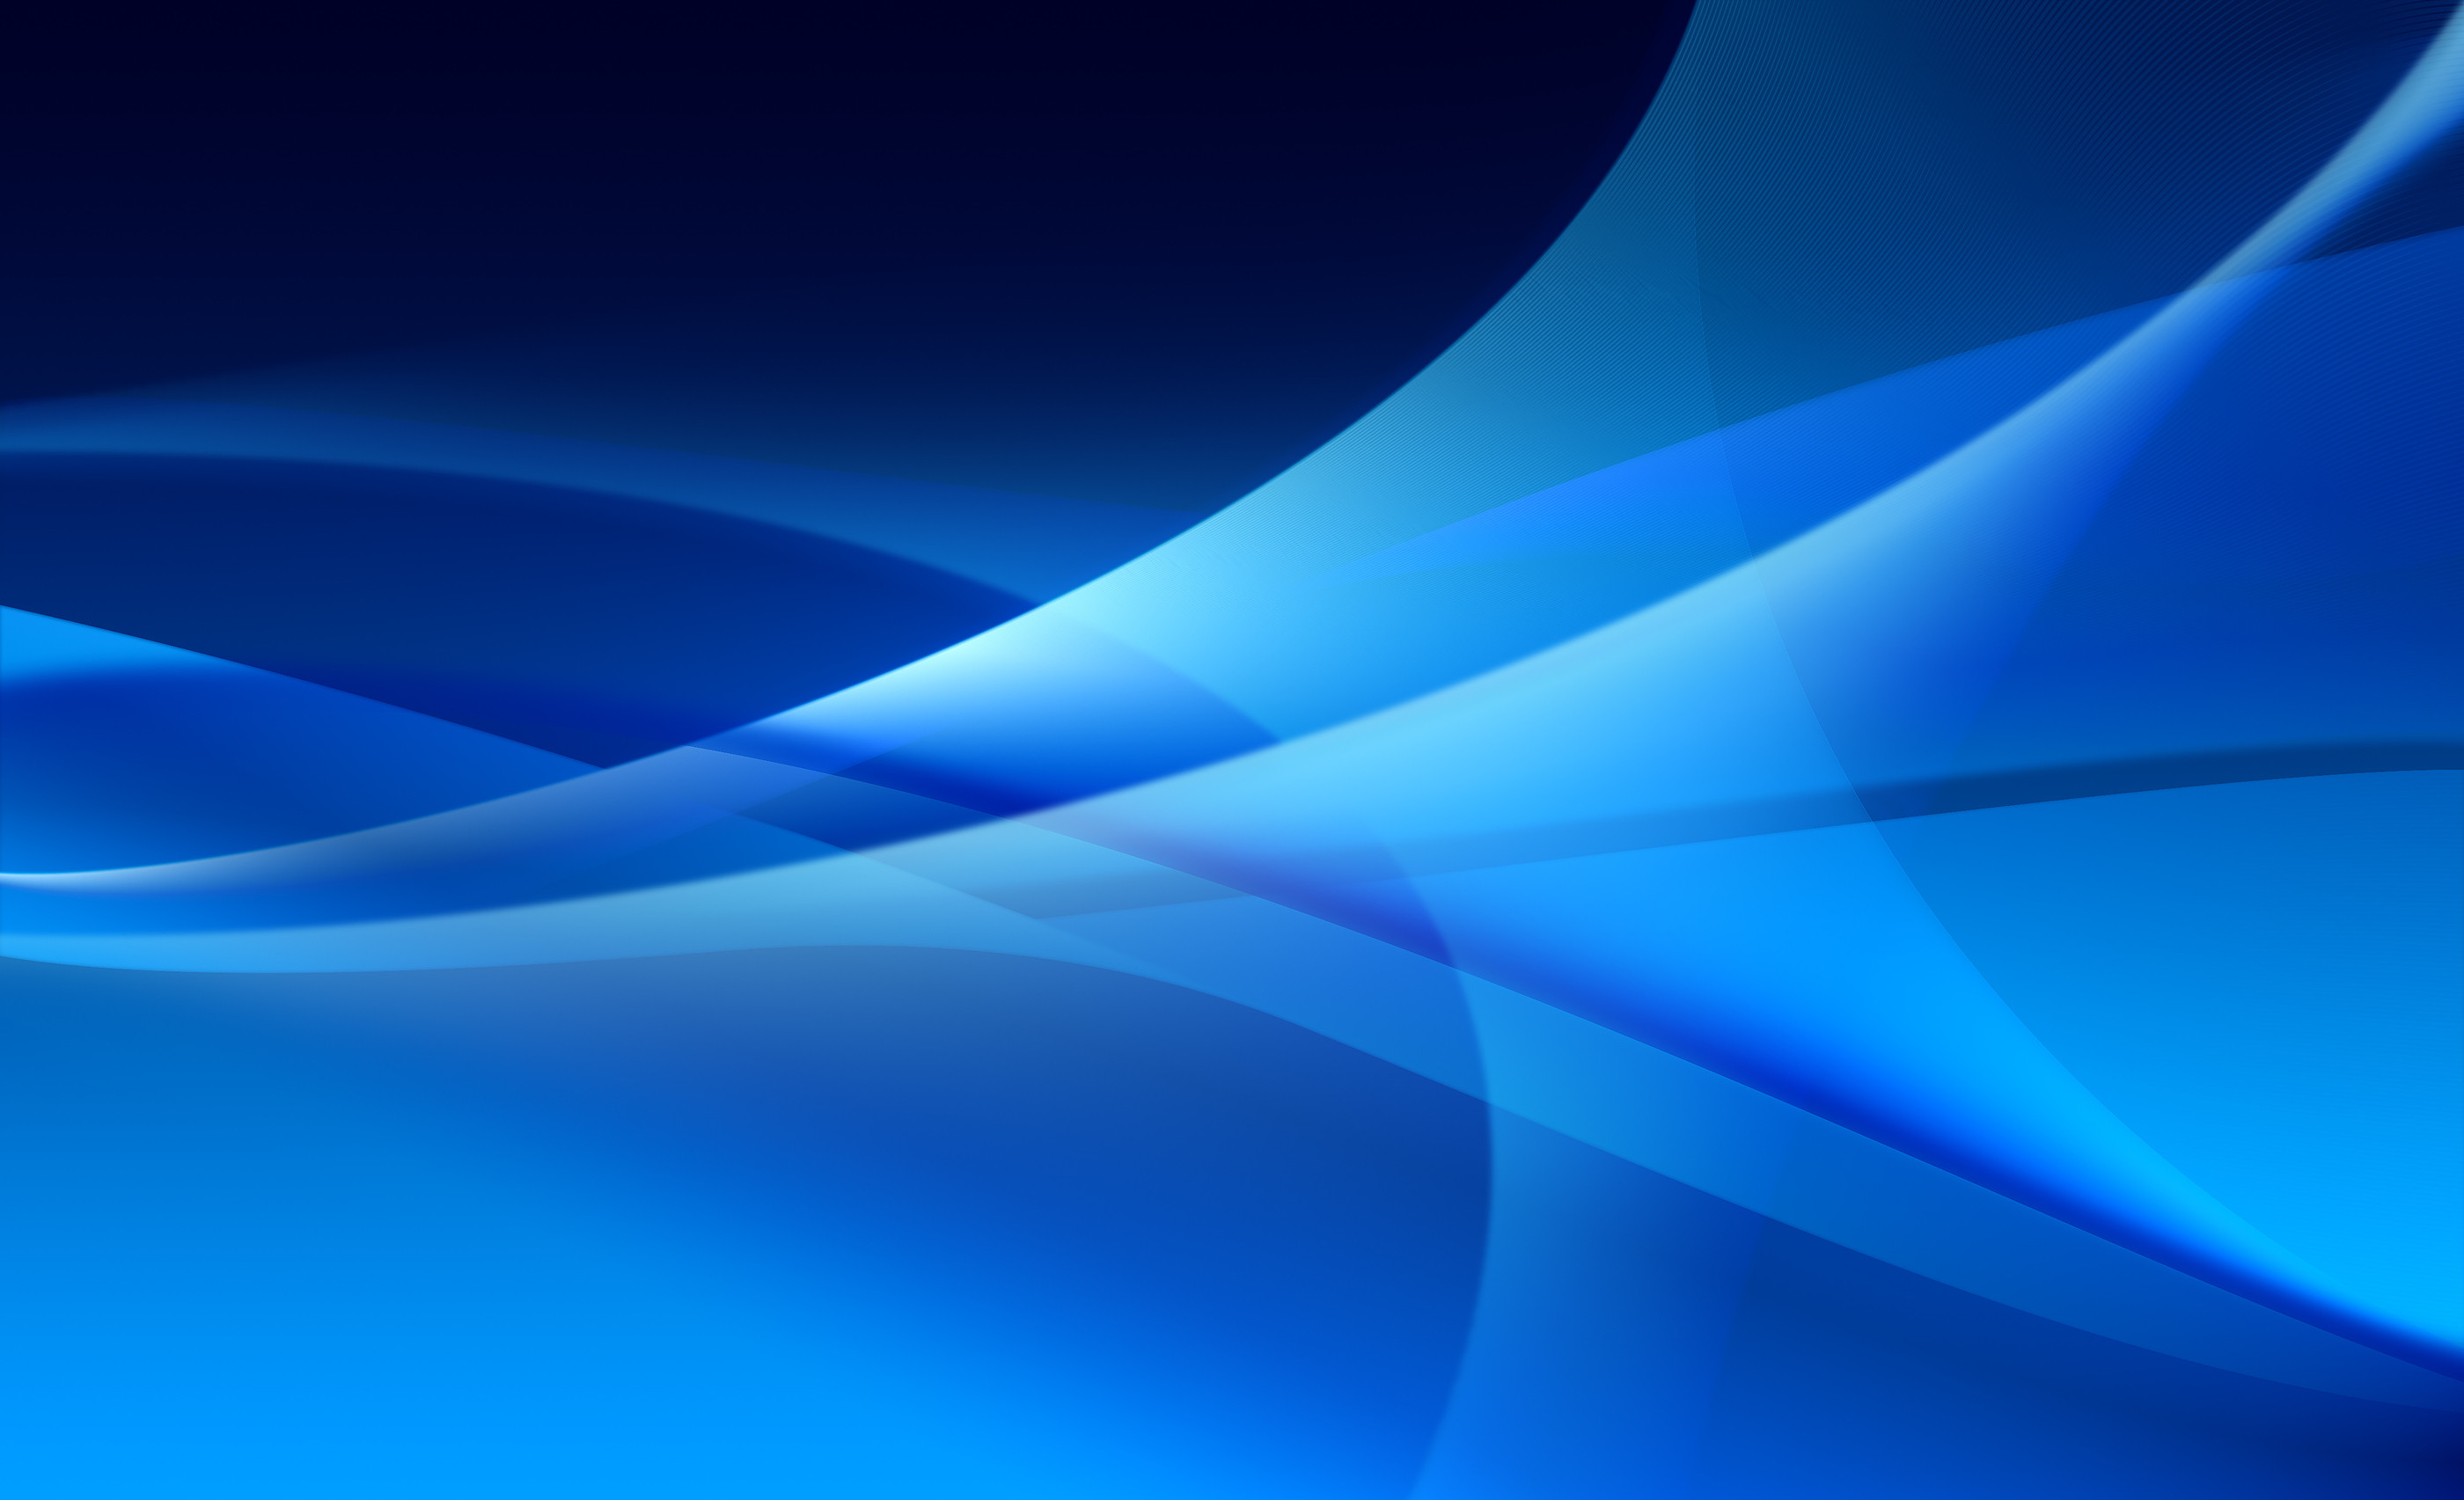 Top 80 Blue Abstract Background HD Spot Best Images | transitionsfv